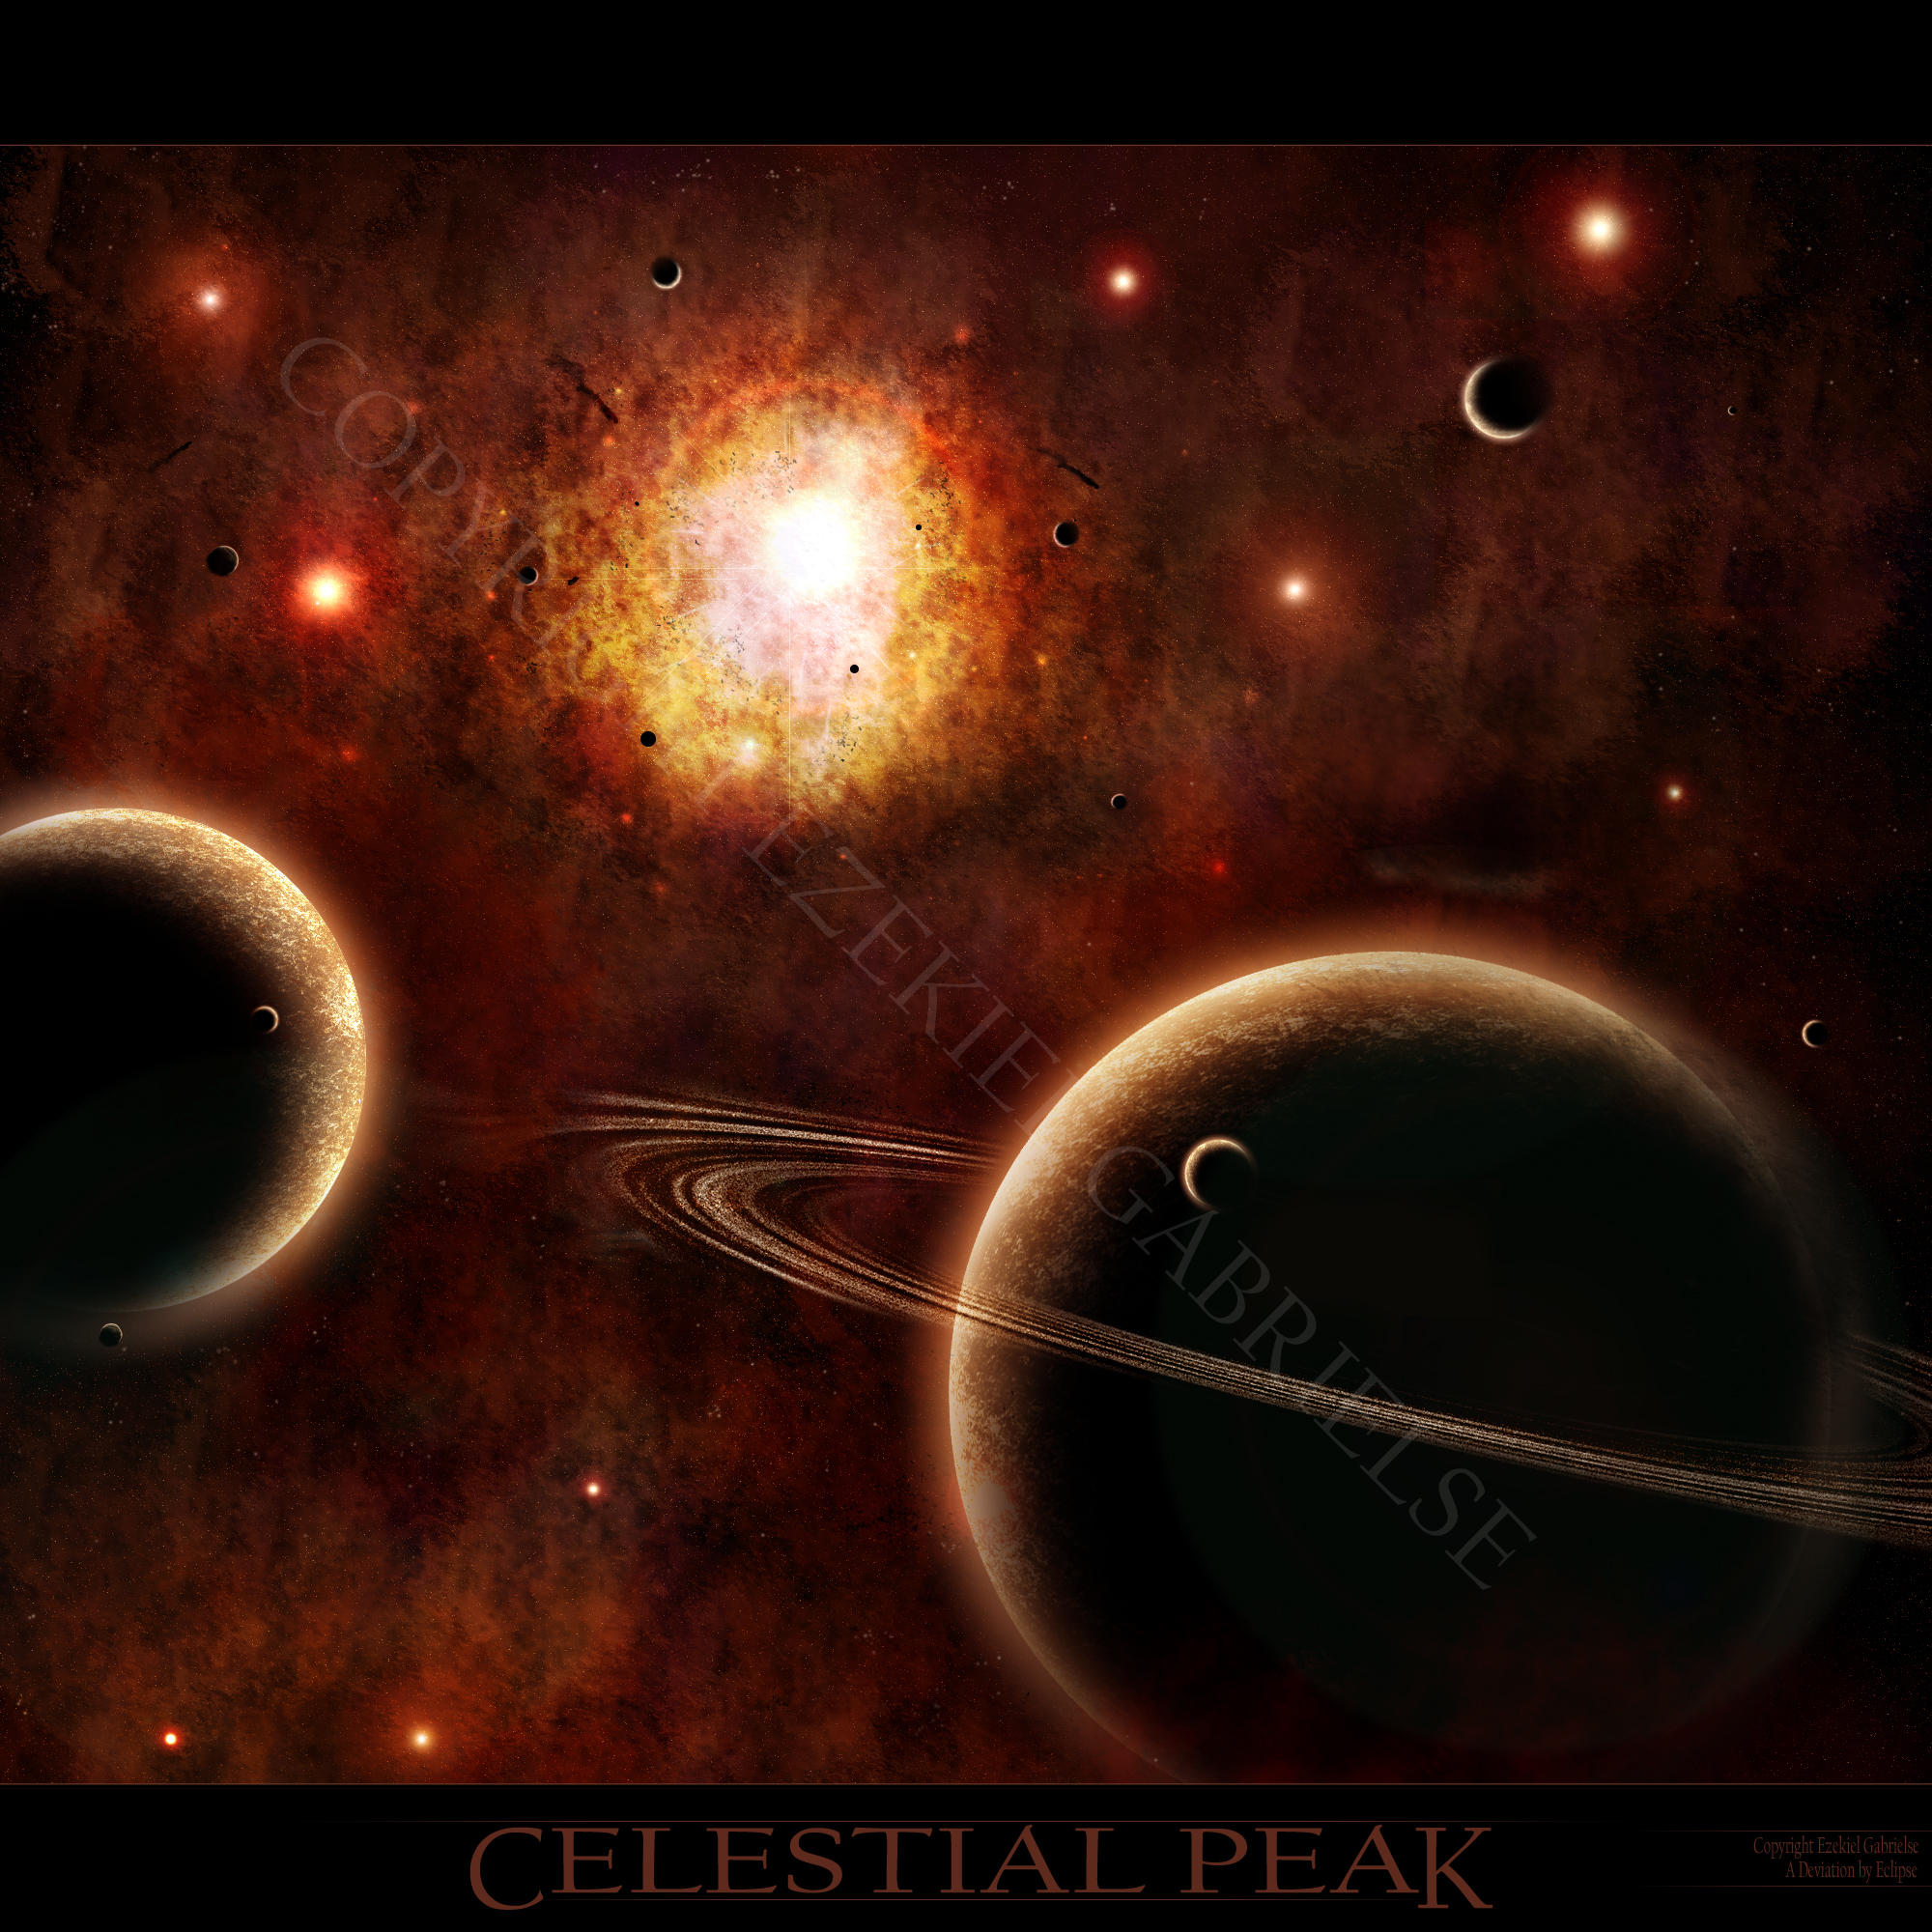 Celestial Peak by Eclipse-CJ3